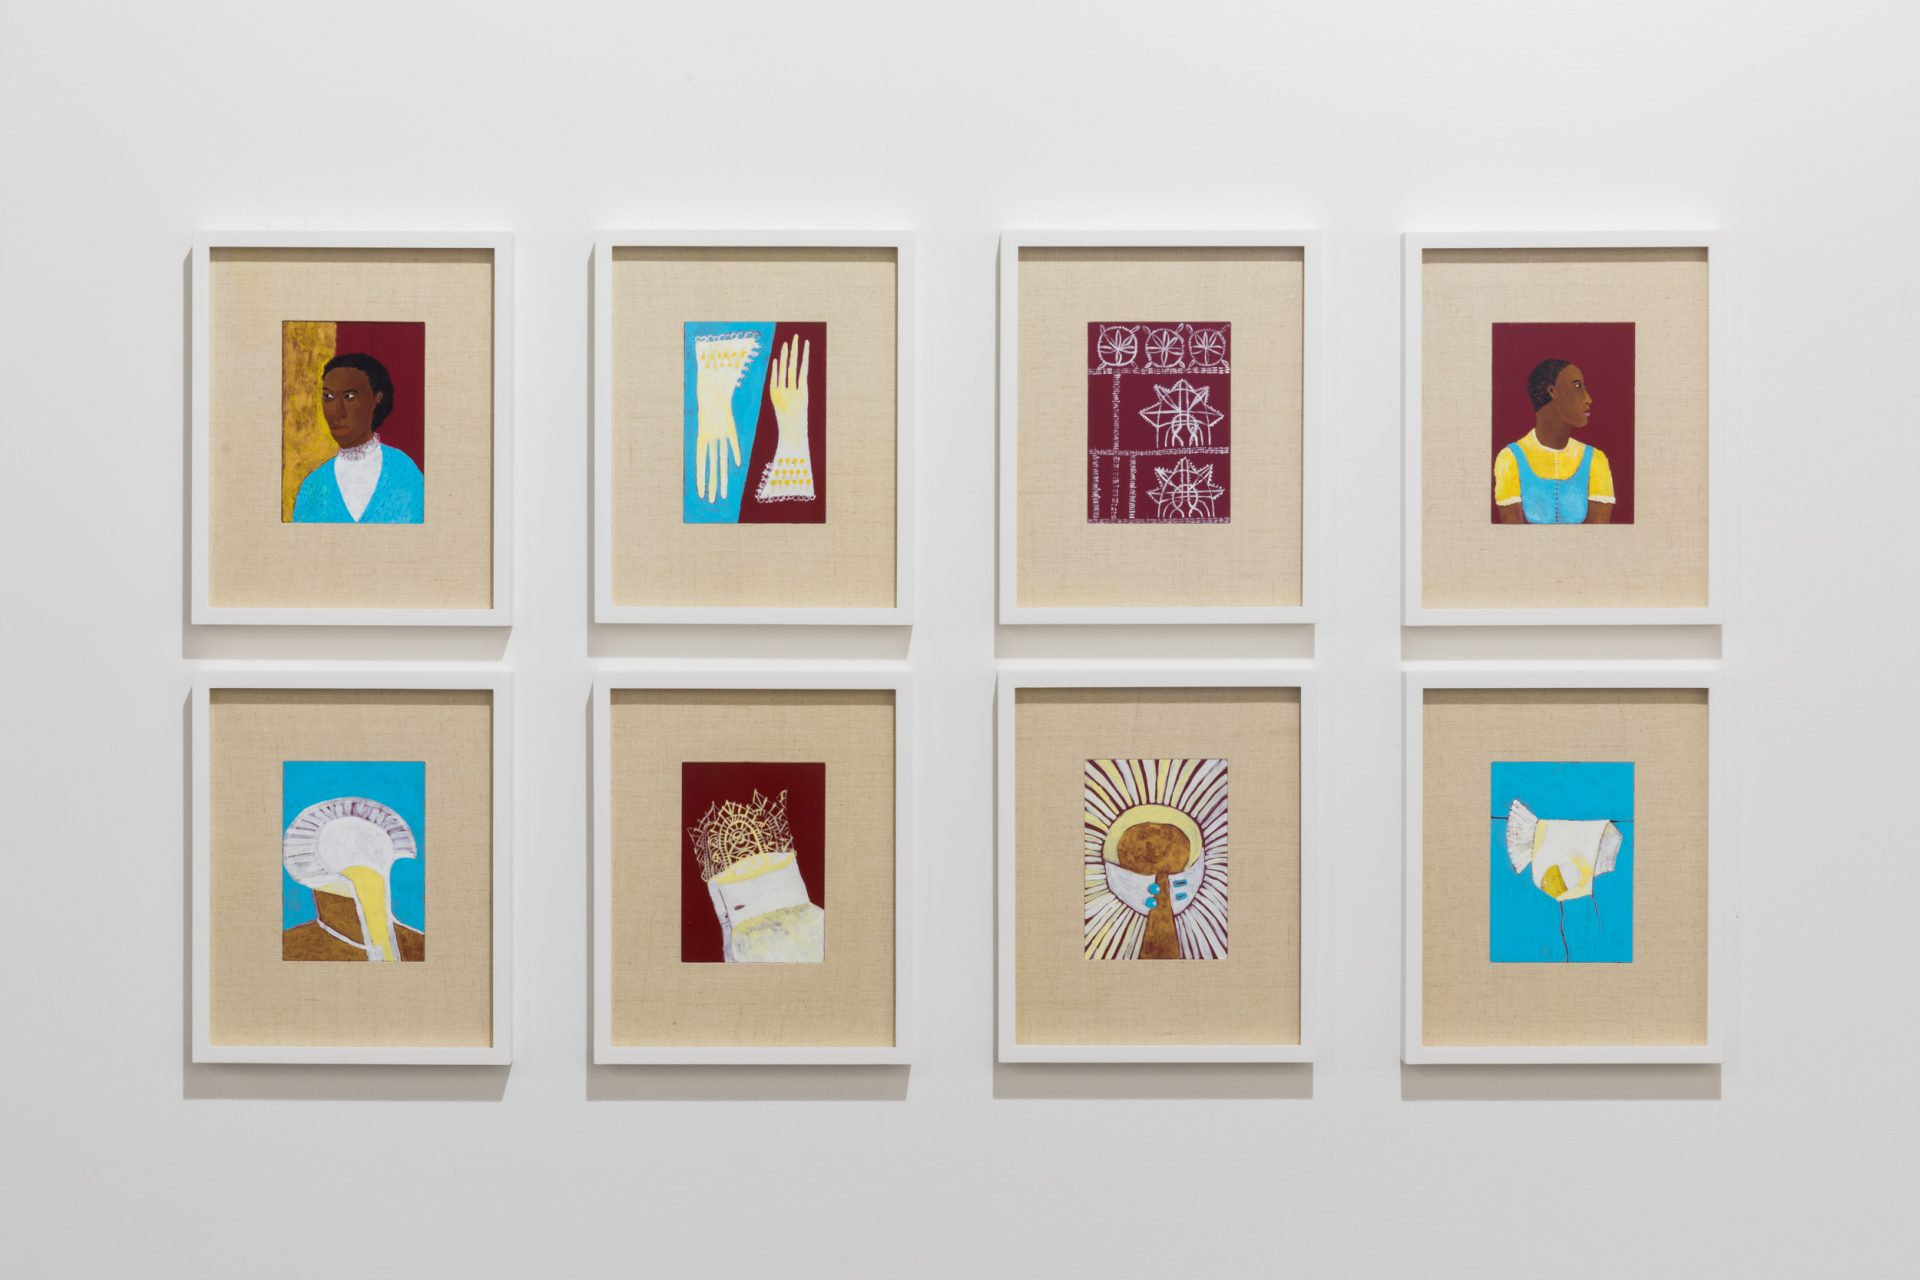 Lubaina Himid in 'RELATIONS: Diaspora and Painting', Esker Foundation, 24 July –27 November 2021